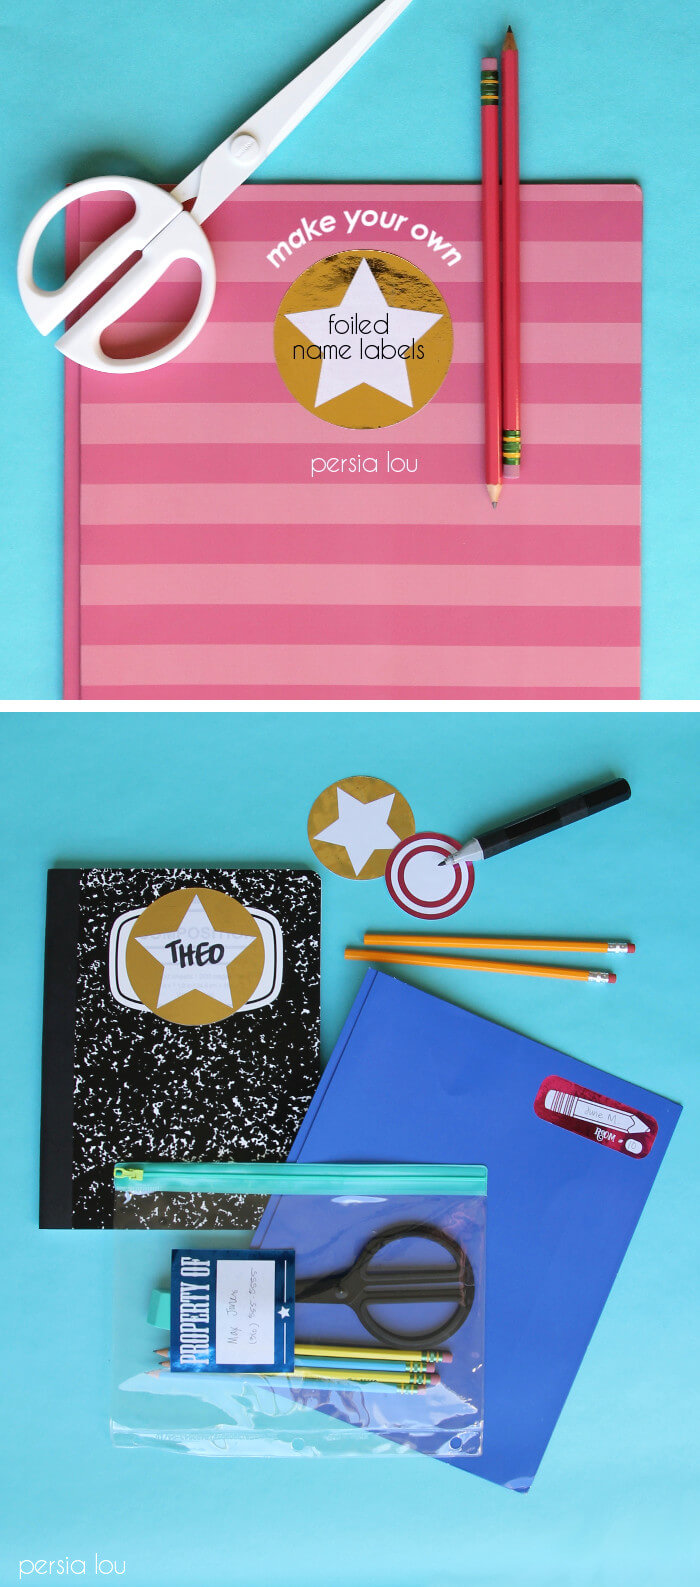 make your own foiled name labels - free download!